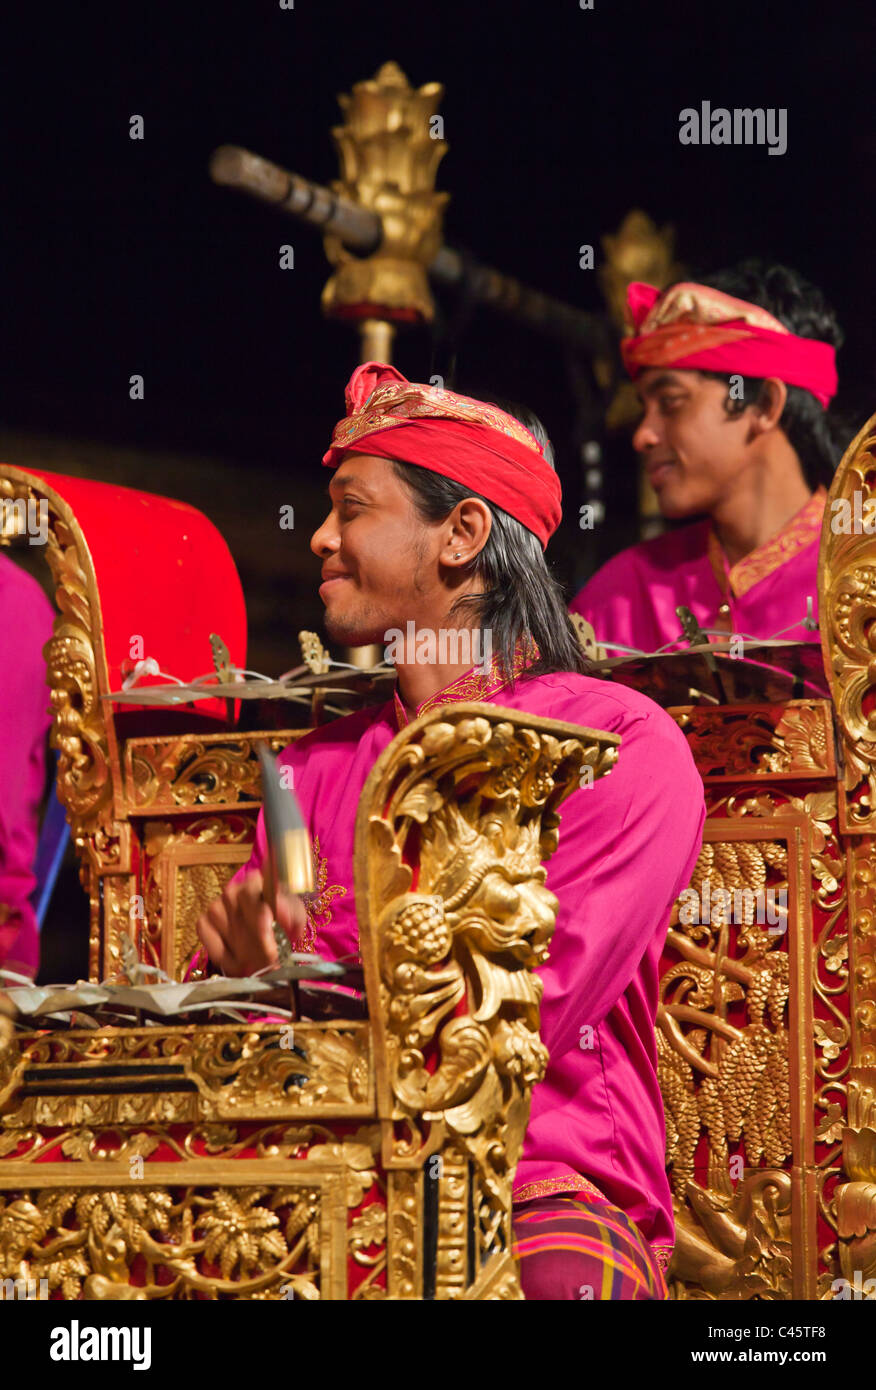 The Cenik Wayah GAMELAN INSTUMENTAL is performed at PURA TAMAN SARASWATI - UBUD, BALI, INDONESIA - Stock Image